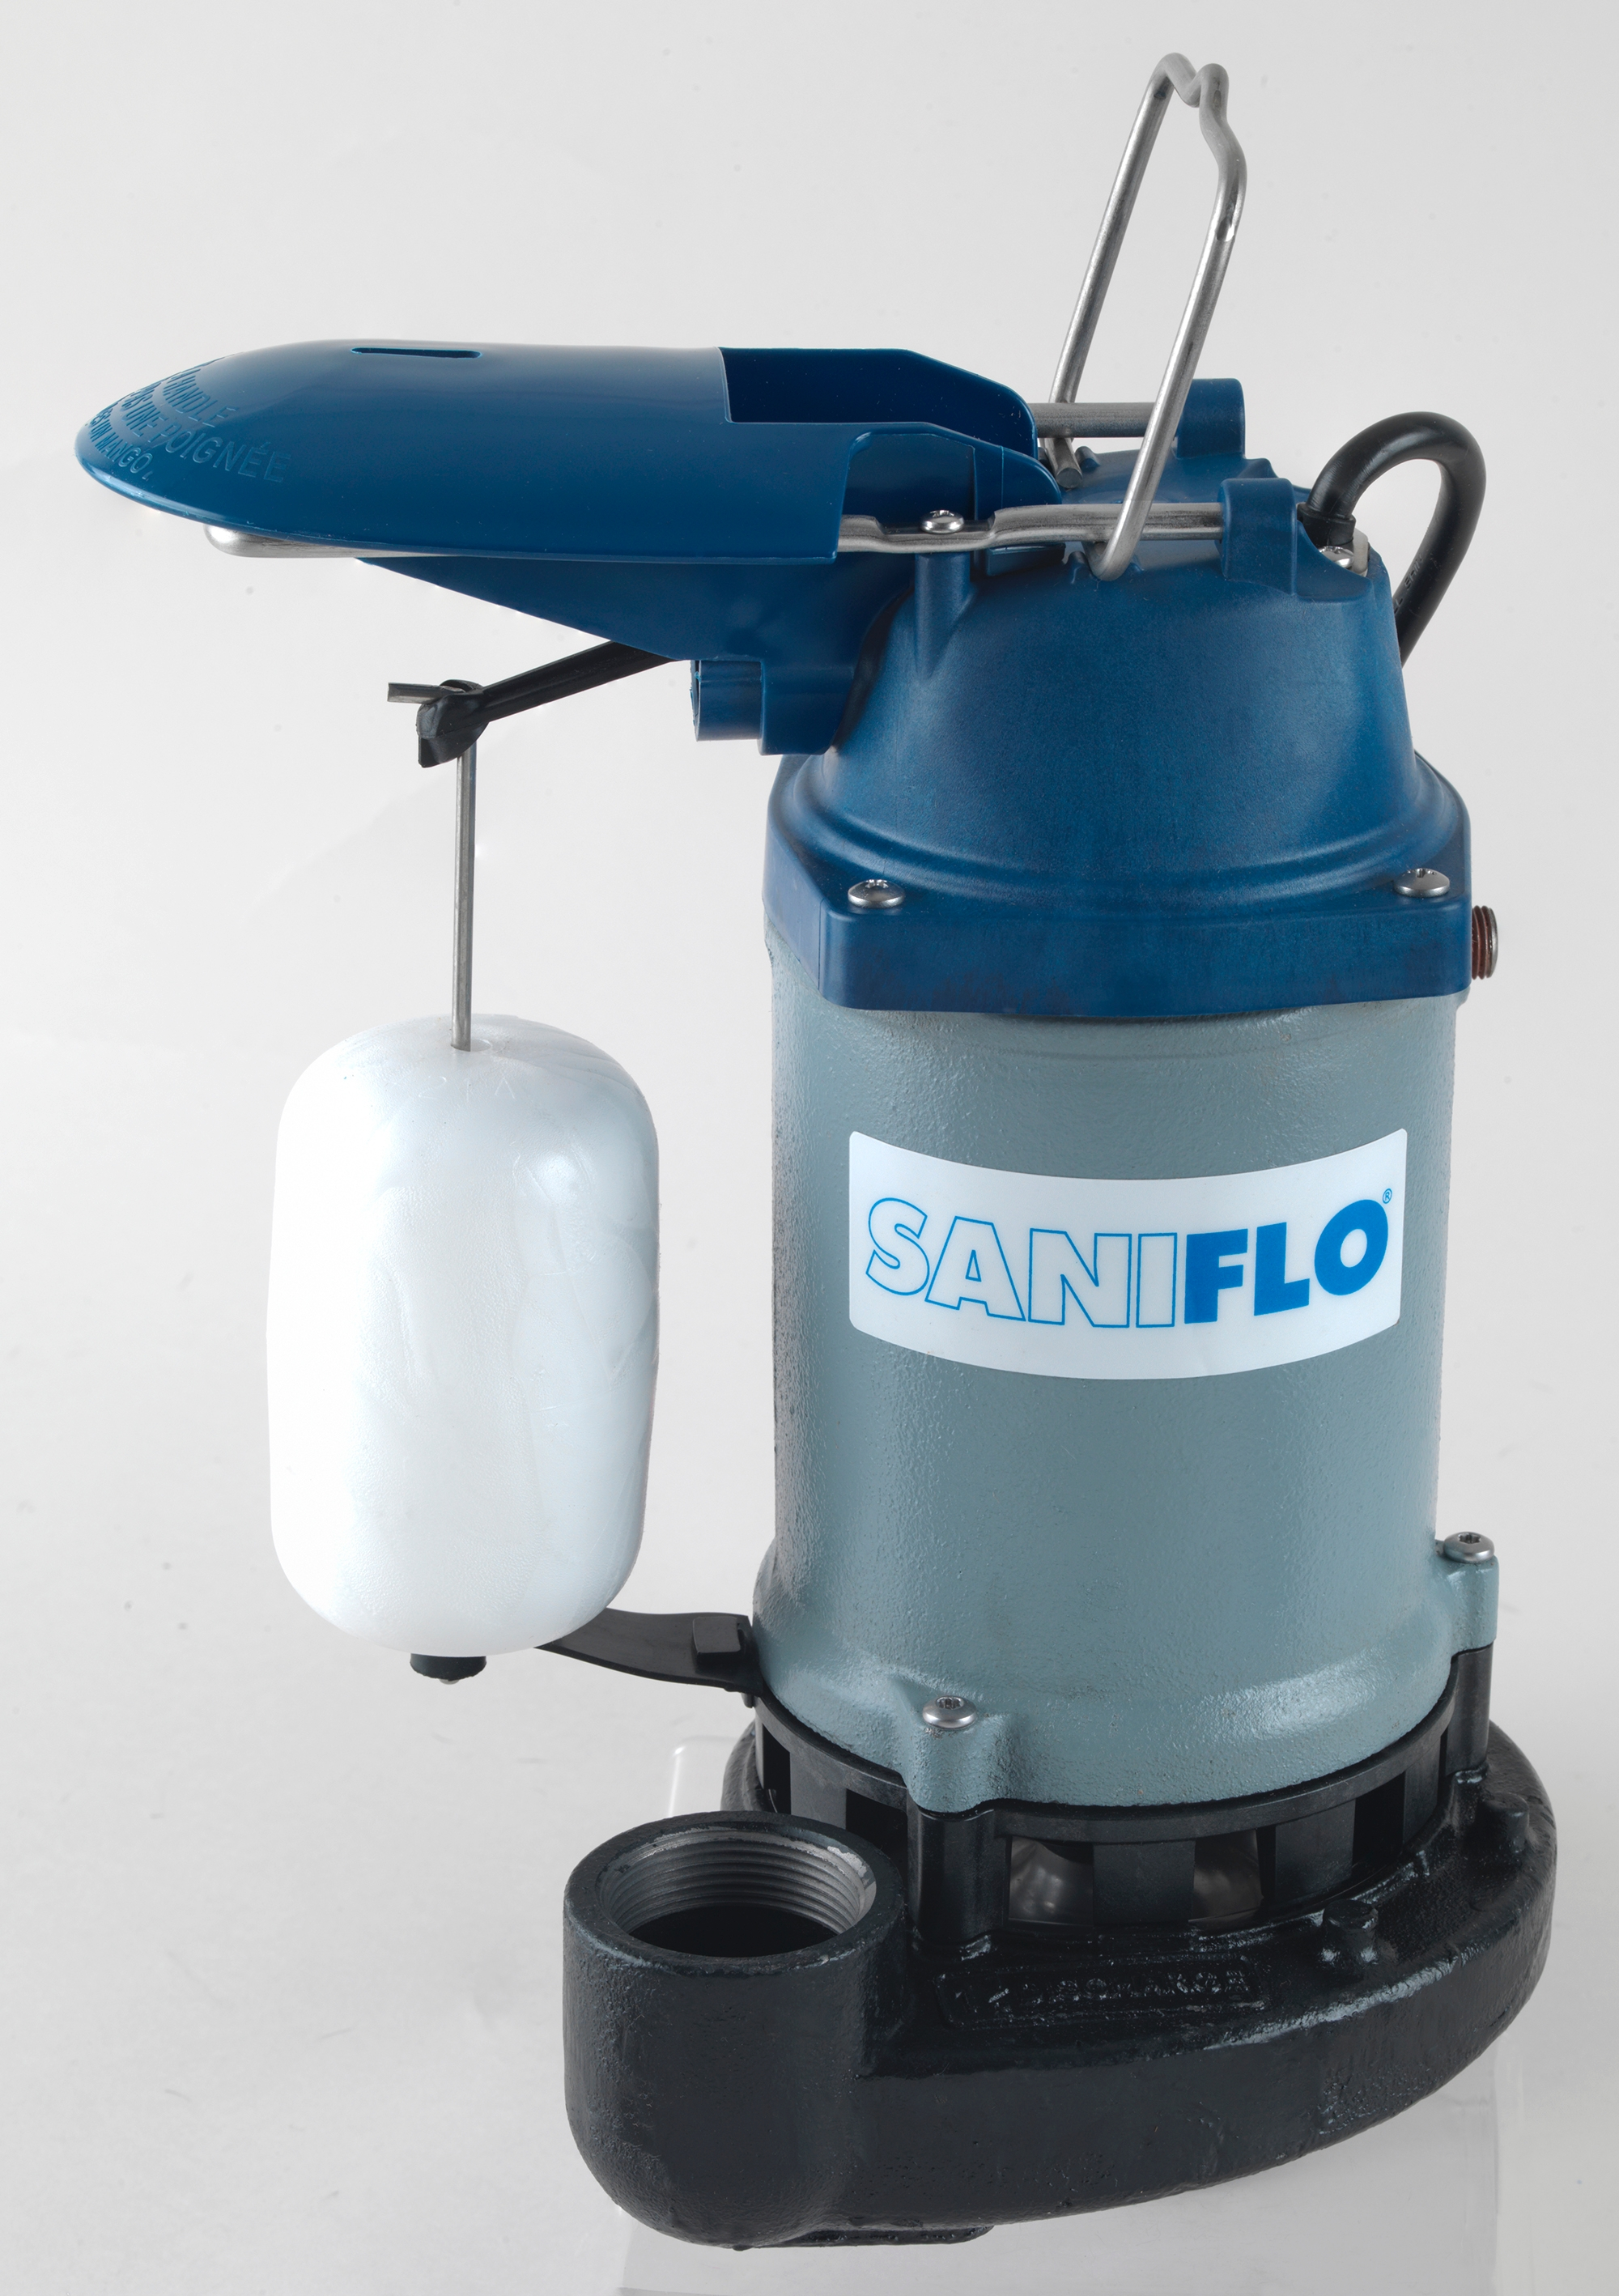 bathroom pro saniflo and sfa products adaptable line sanibroyeur heating macerator search product sanitop air toilets bath up compact the homeowners for kitchen